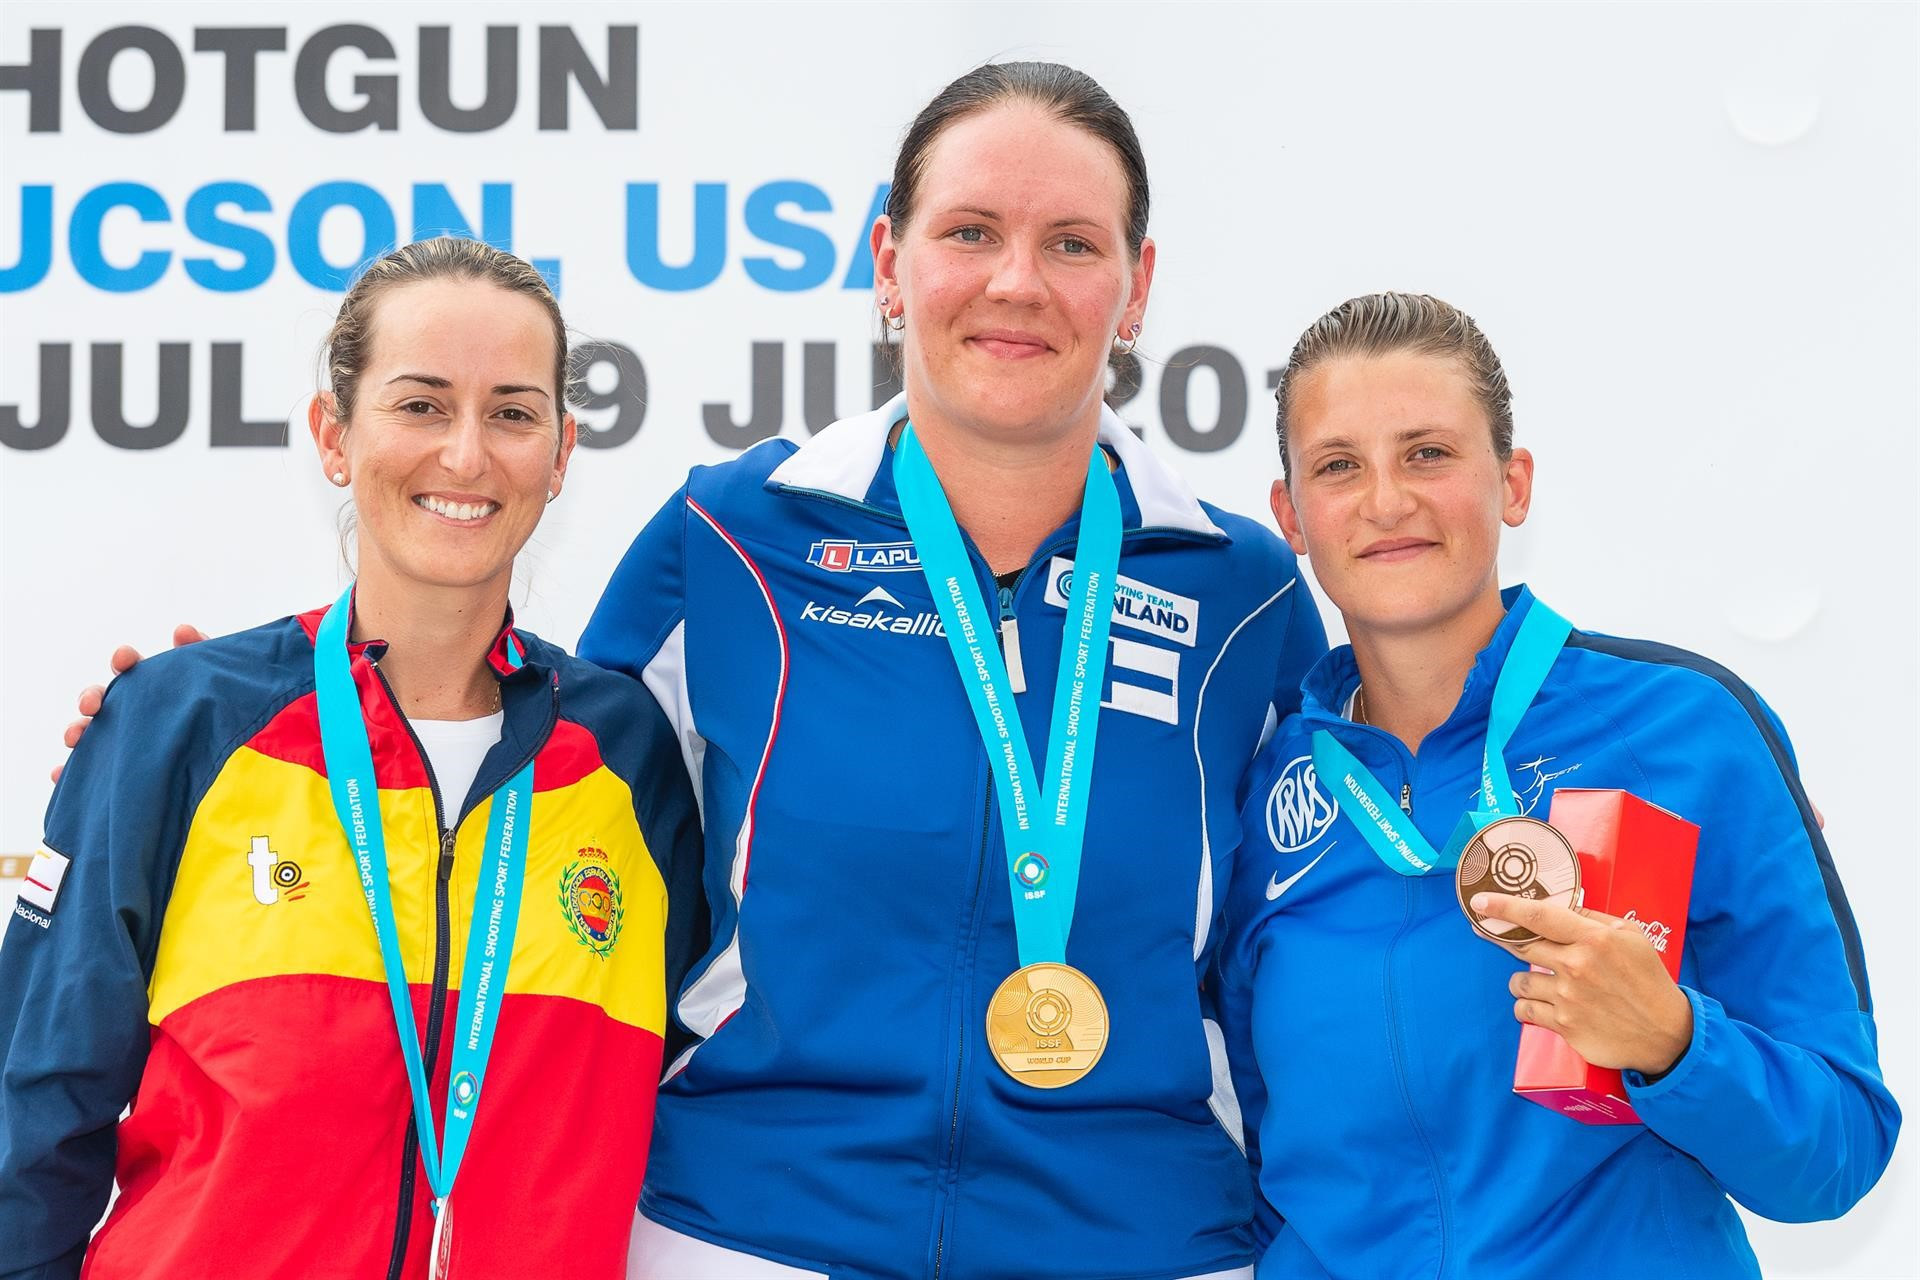 Finland's Marika Salmi emerged victorious from the shoot-off to take gold for the first time in her career ©ISSF